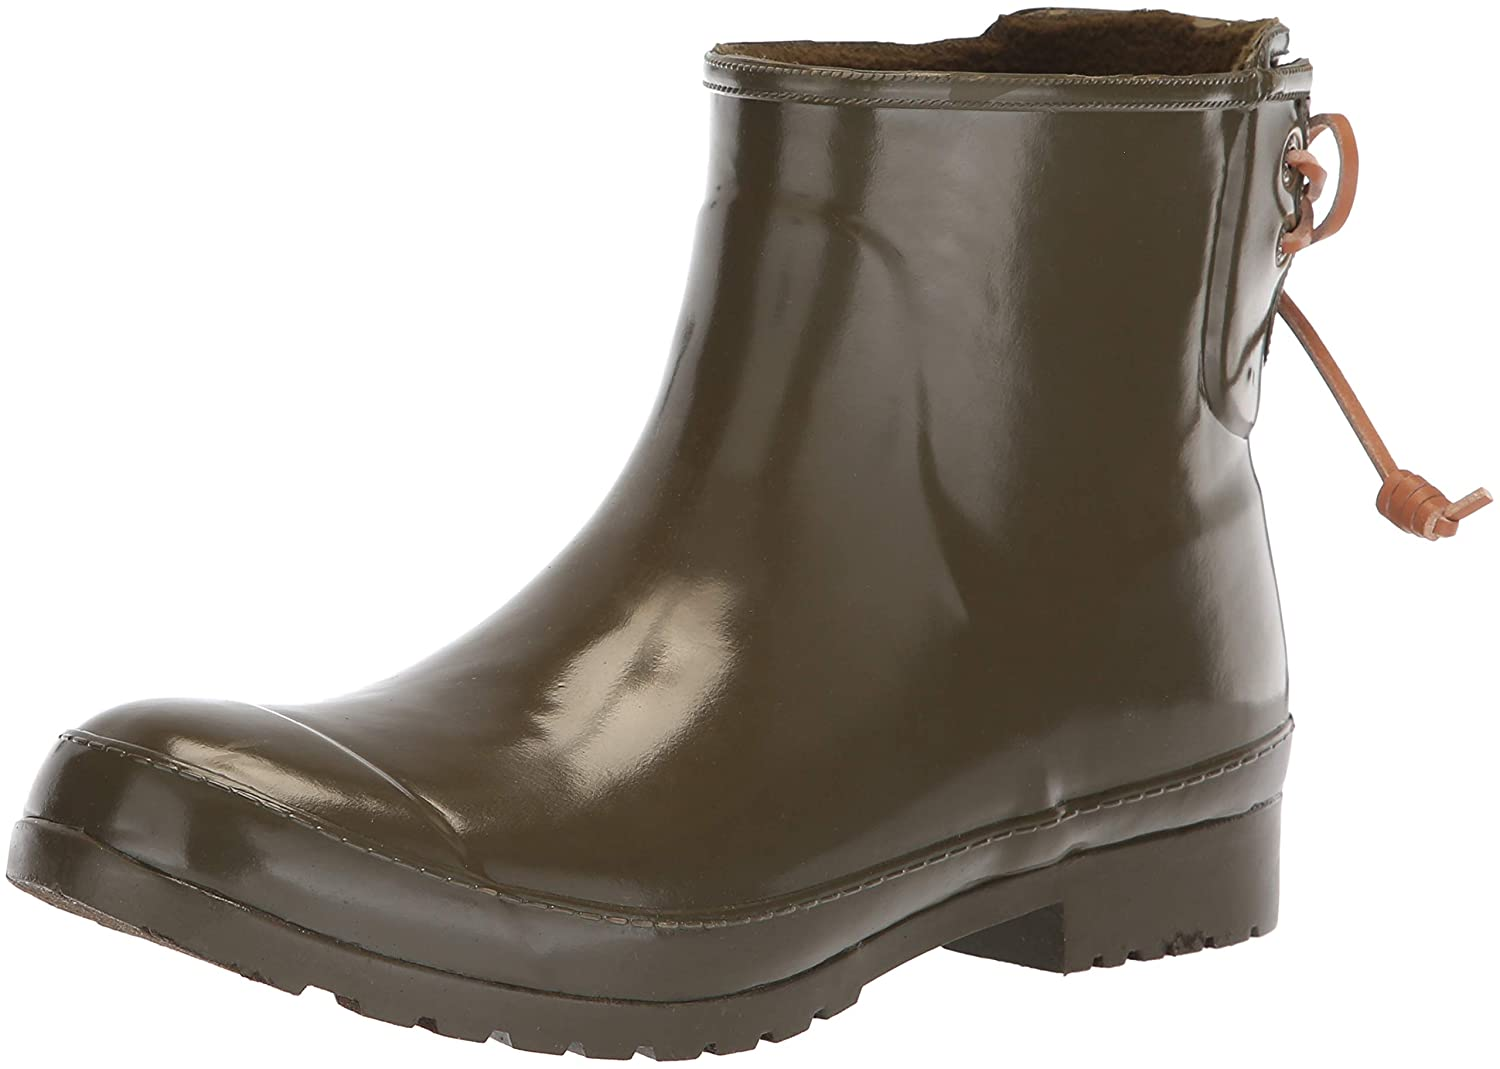 Sperry Rain Boots ONLY $25.99.